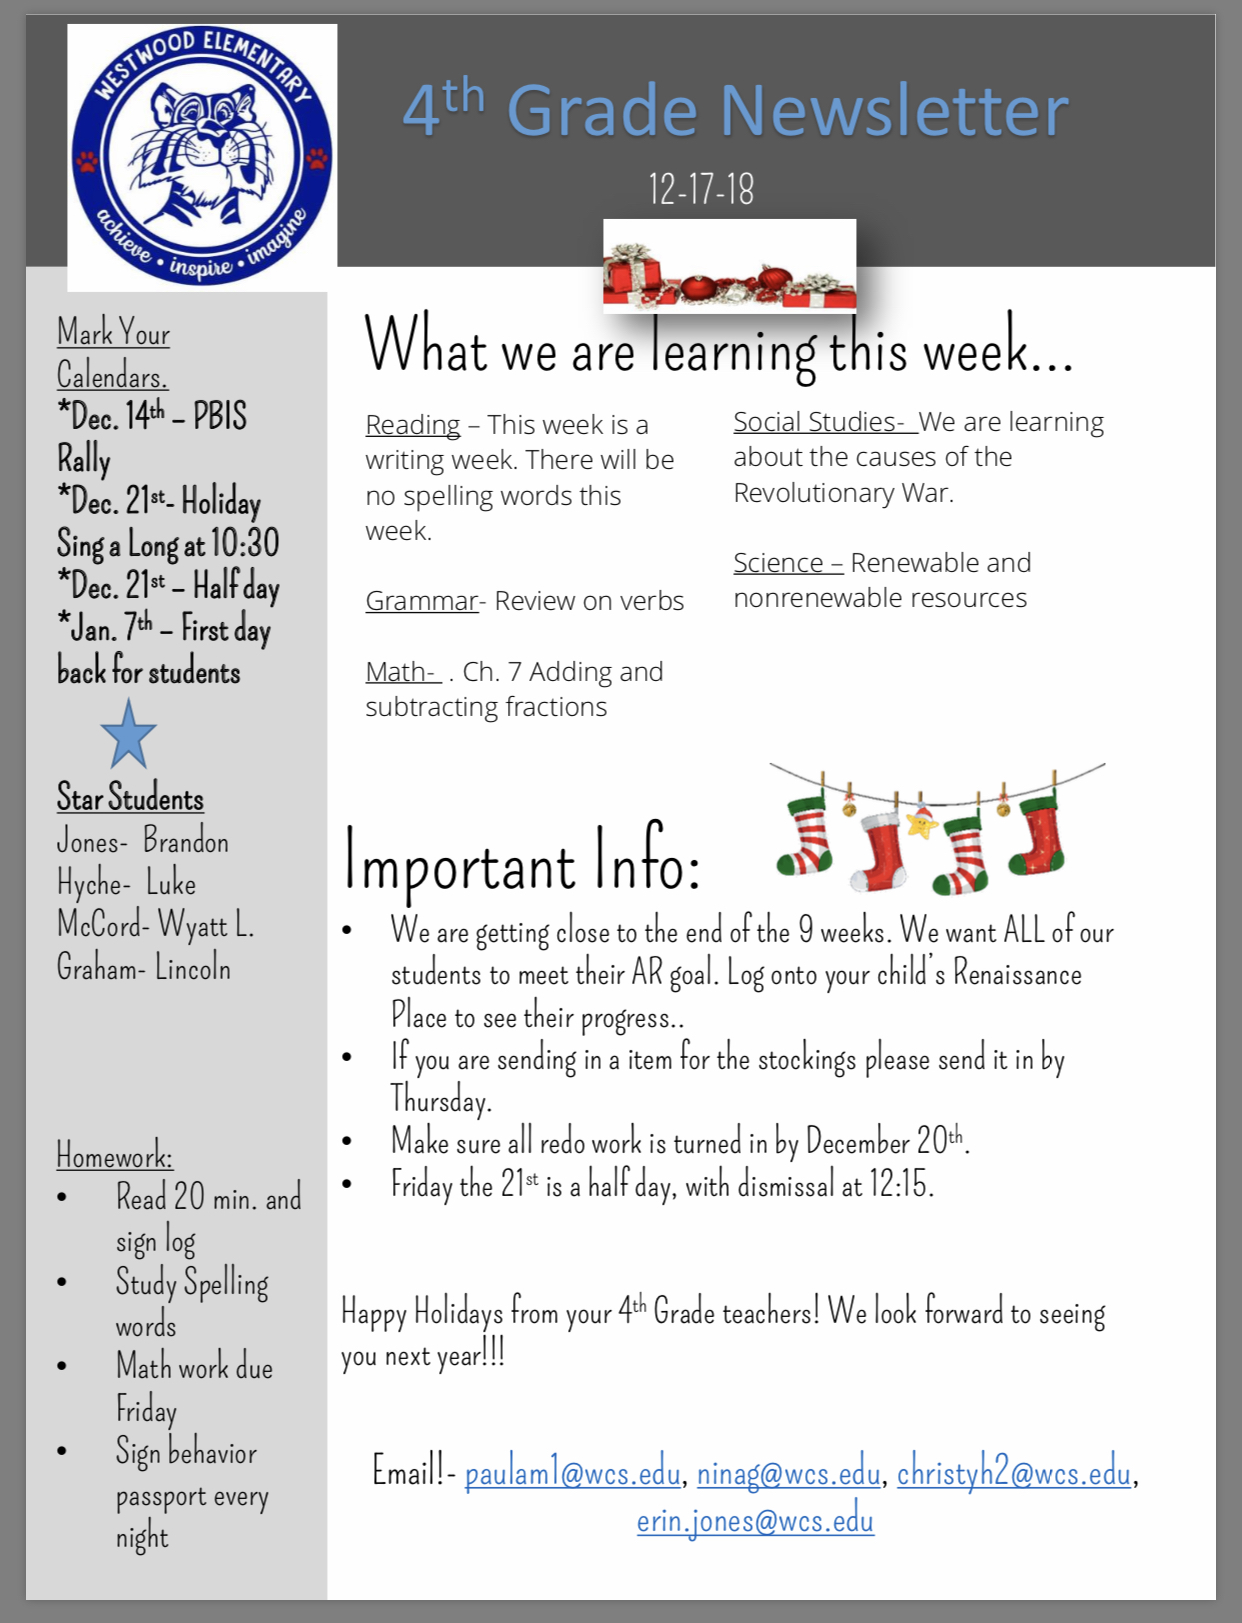 Fourth grade newsletter: paper copy available in office